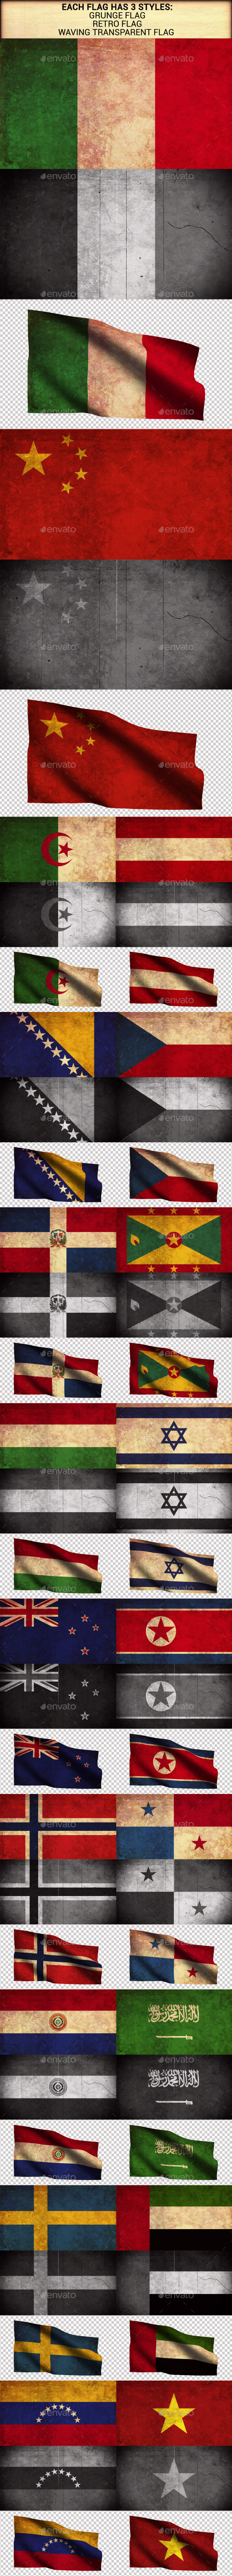 World Flags Grunge and Retro (Part 2) - Urban Backgrounds